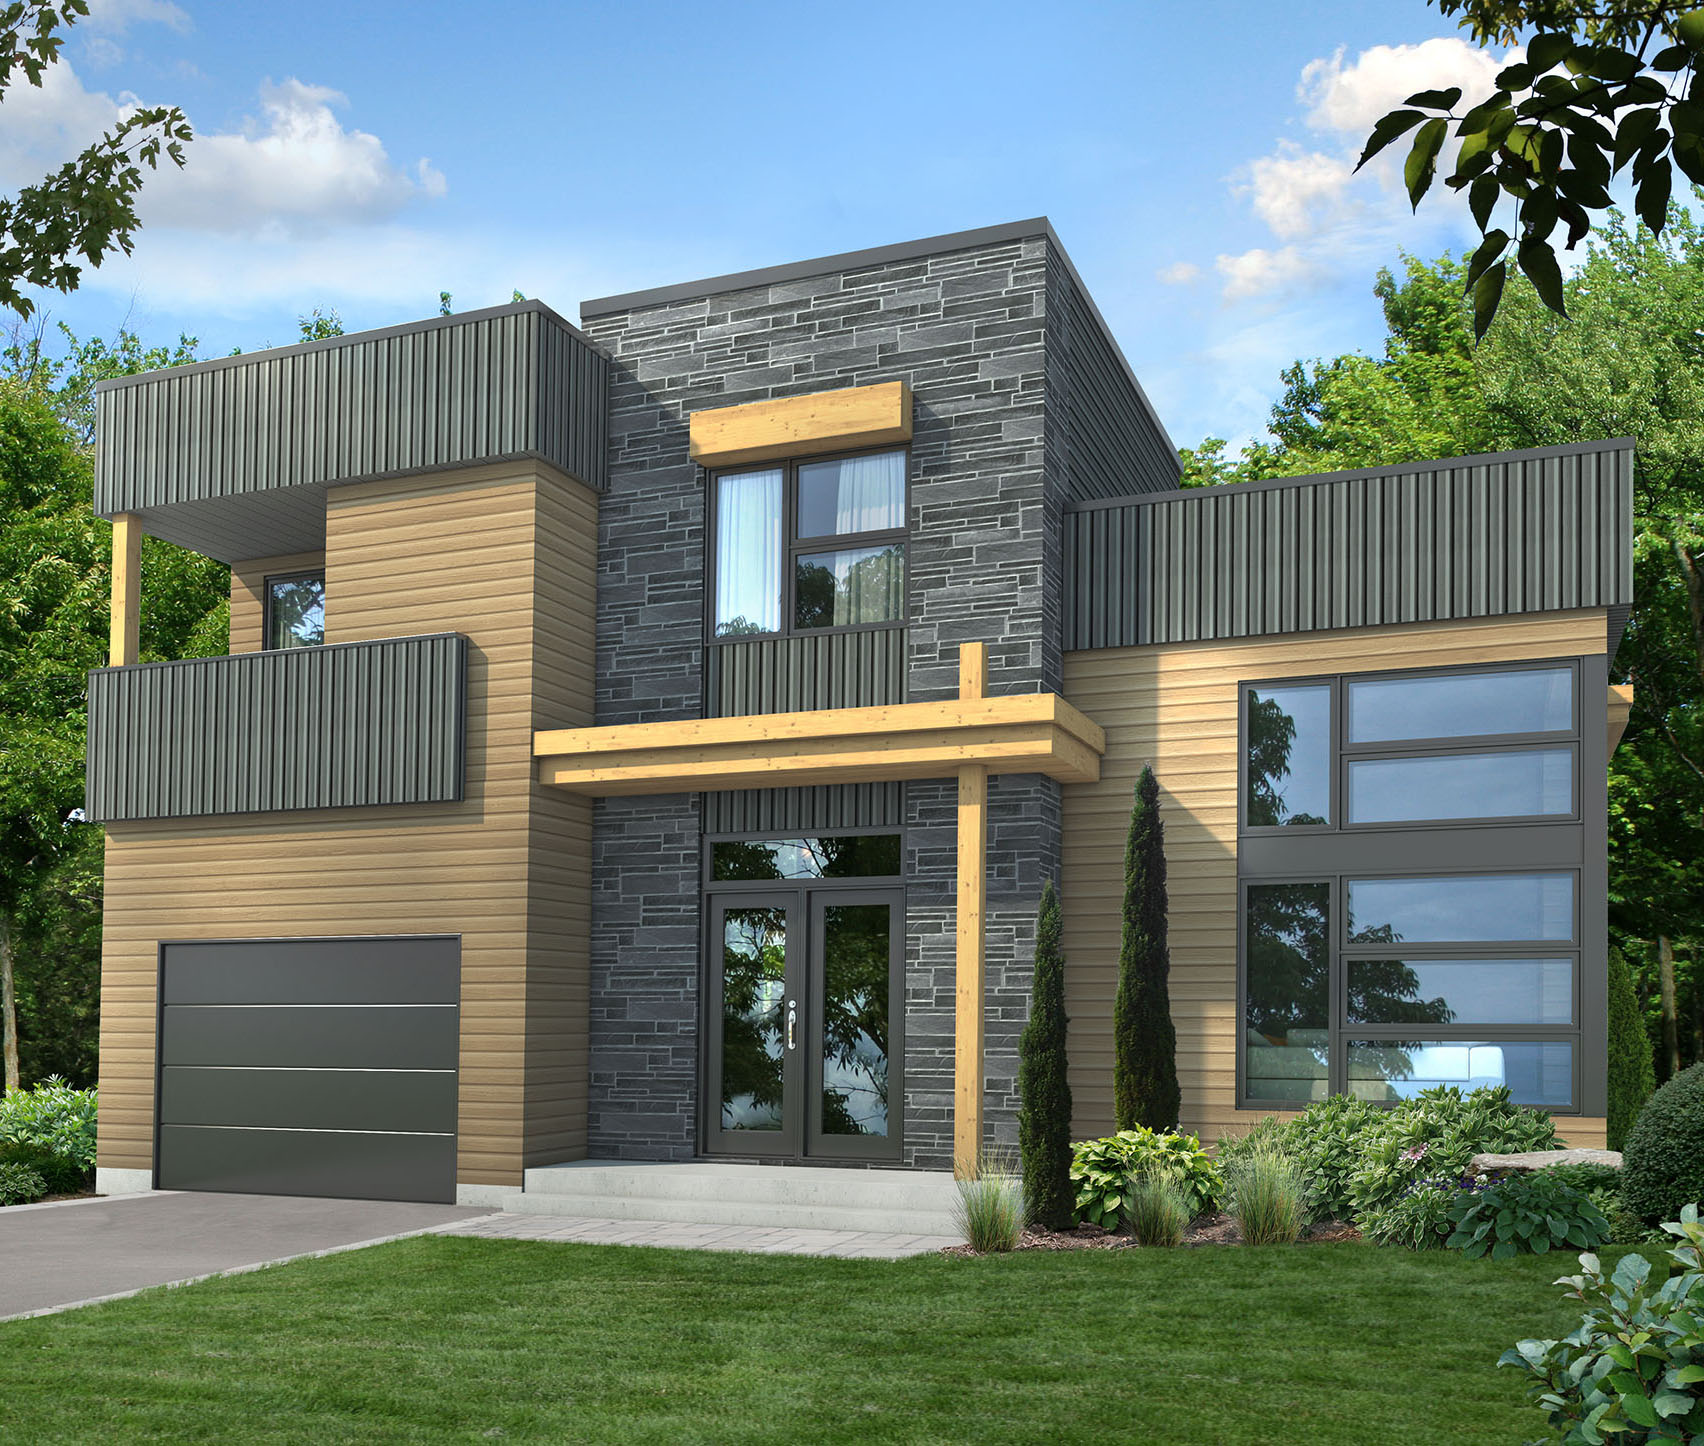 Dynamic Contemporary House Plan - 80782PM